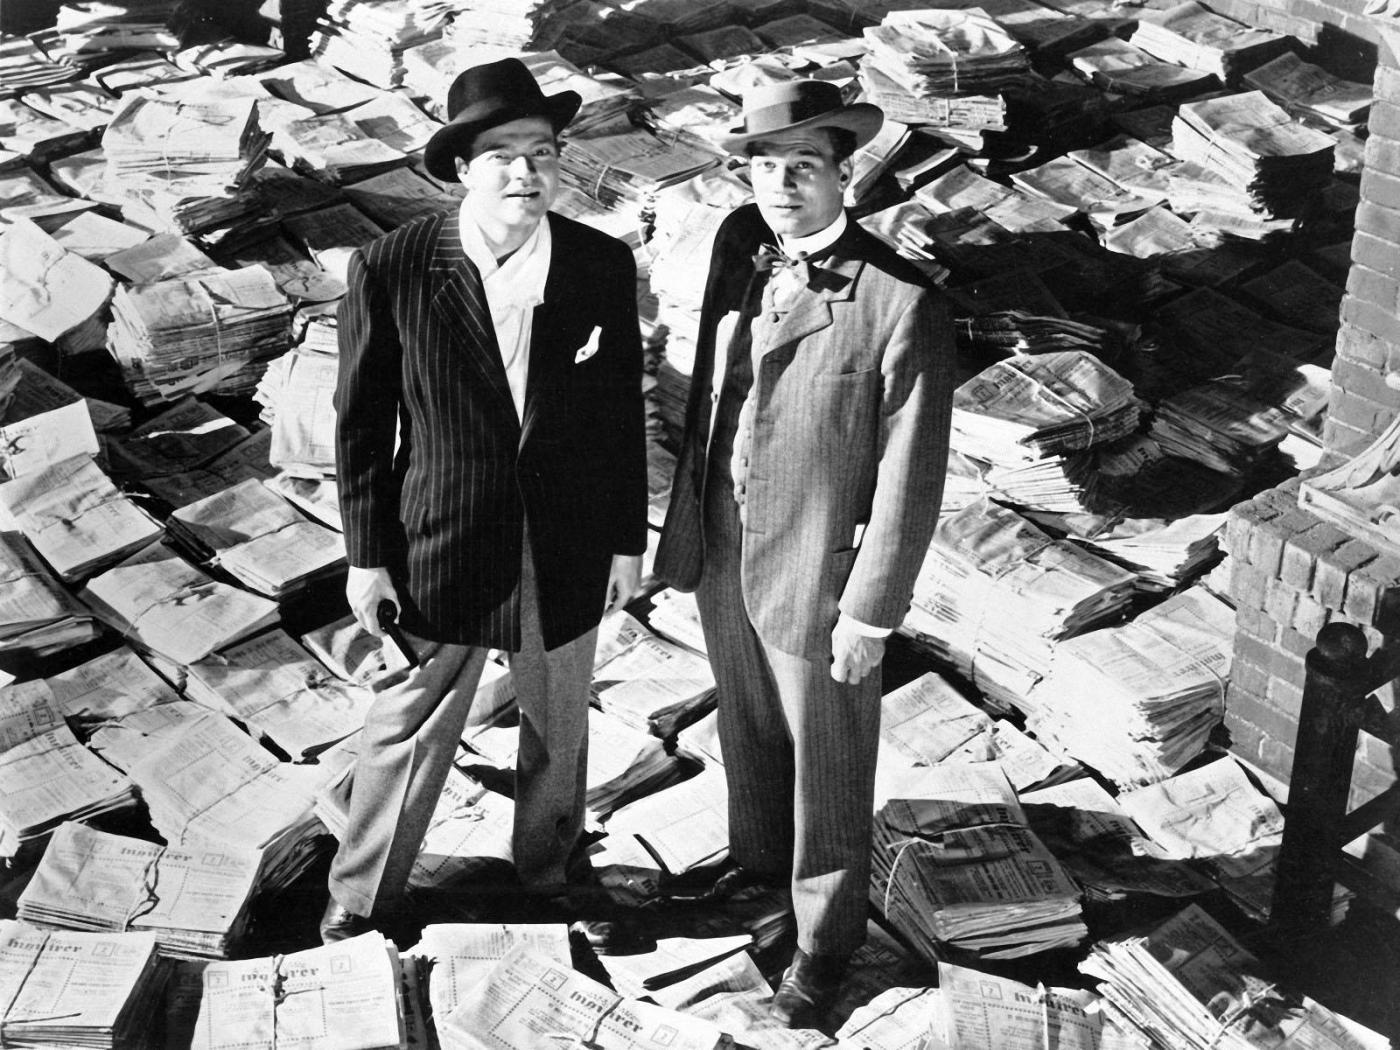 HIDDEN GEMS: 1. CITIZEN KANE